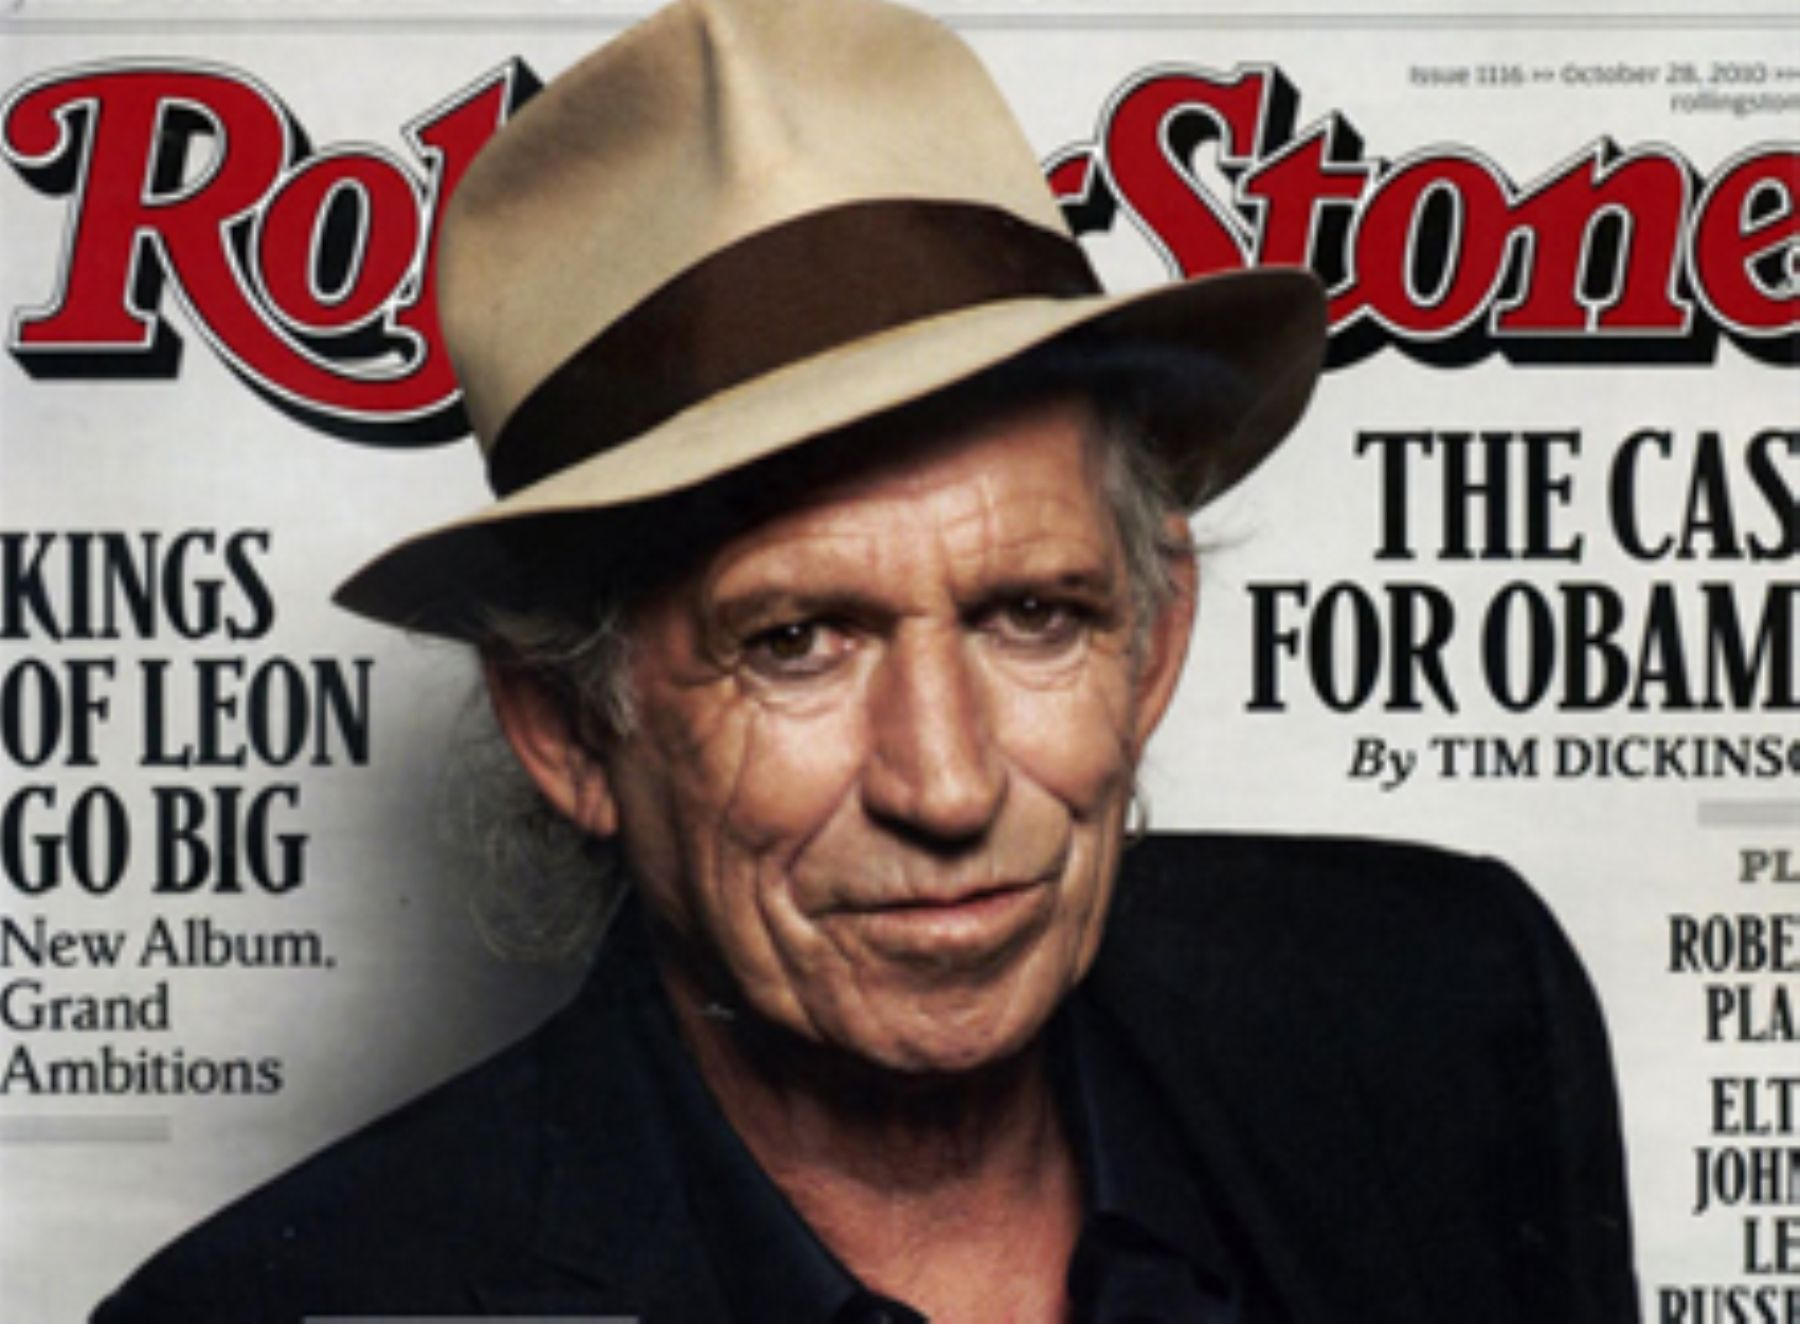 Libro De Keith Richards Keith Richards Cuenta En Un Libro Su Vida De Drogas Y Rock